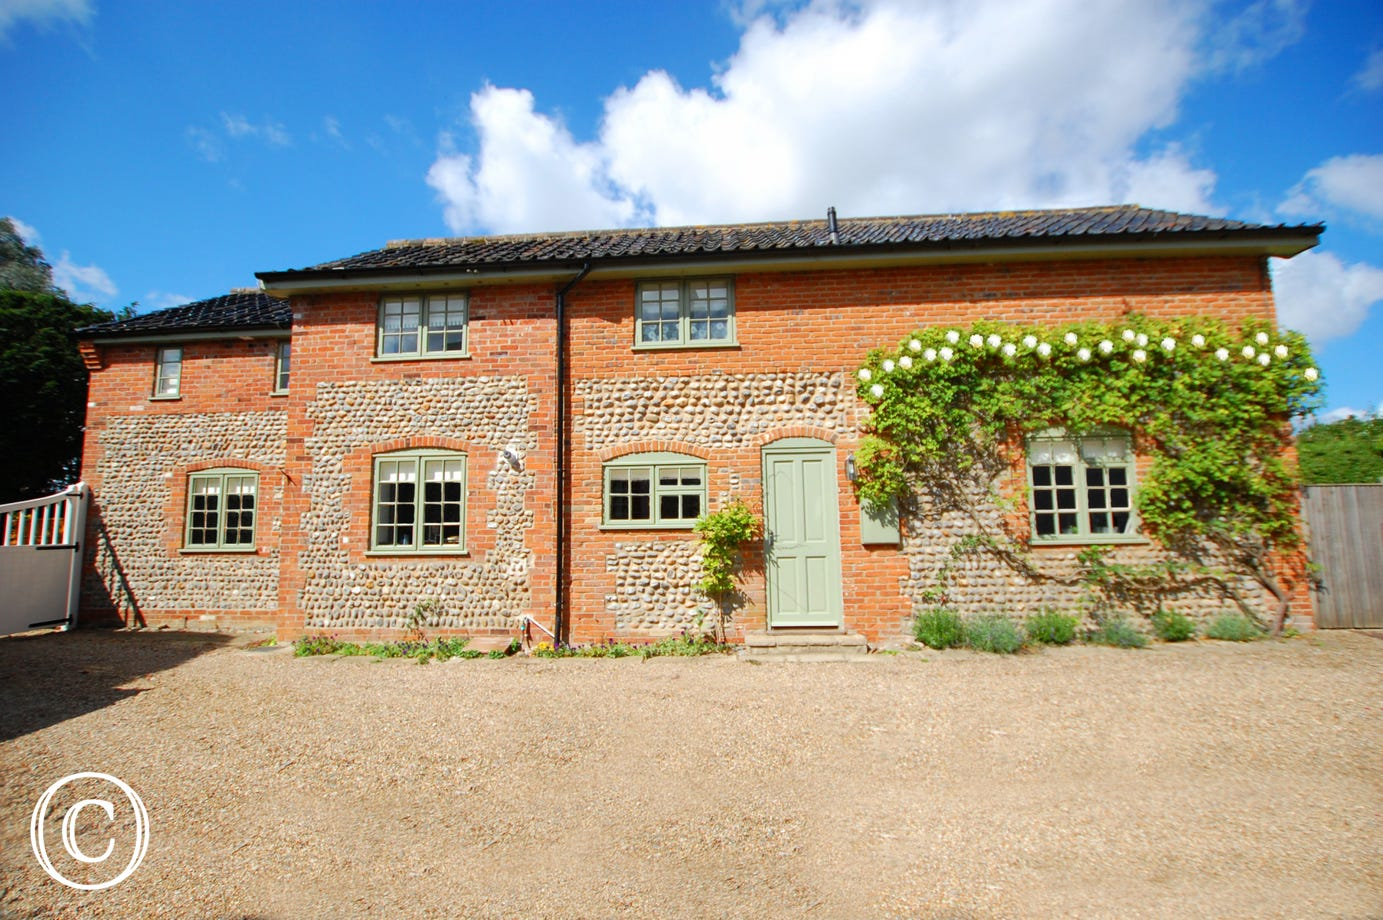 The appealing brick and flint exterior of Knapton Hall Cottage.